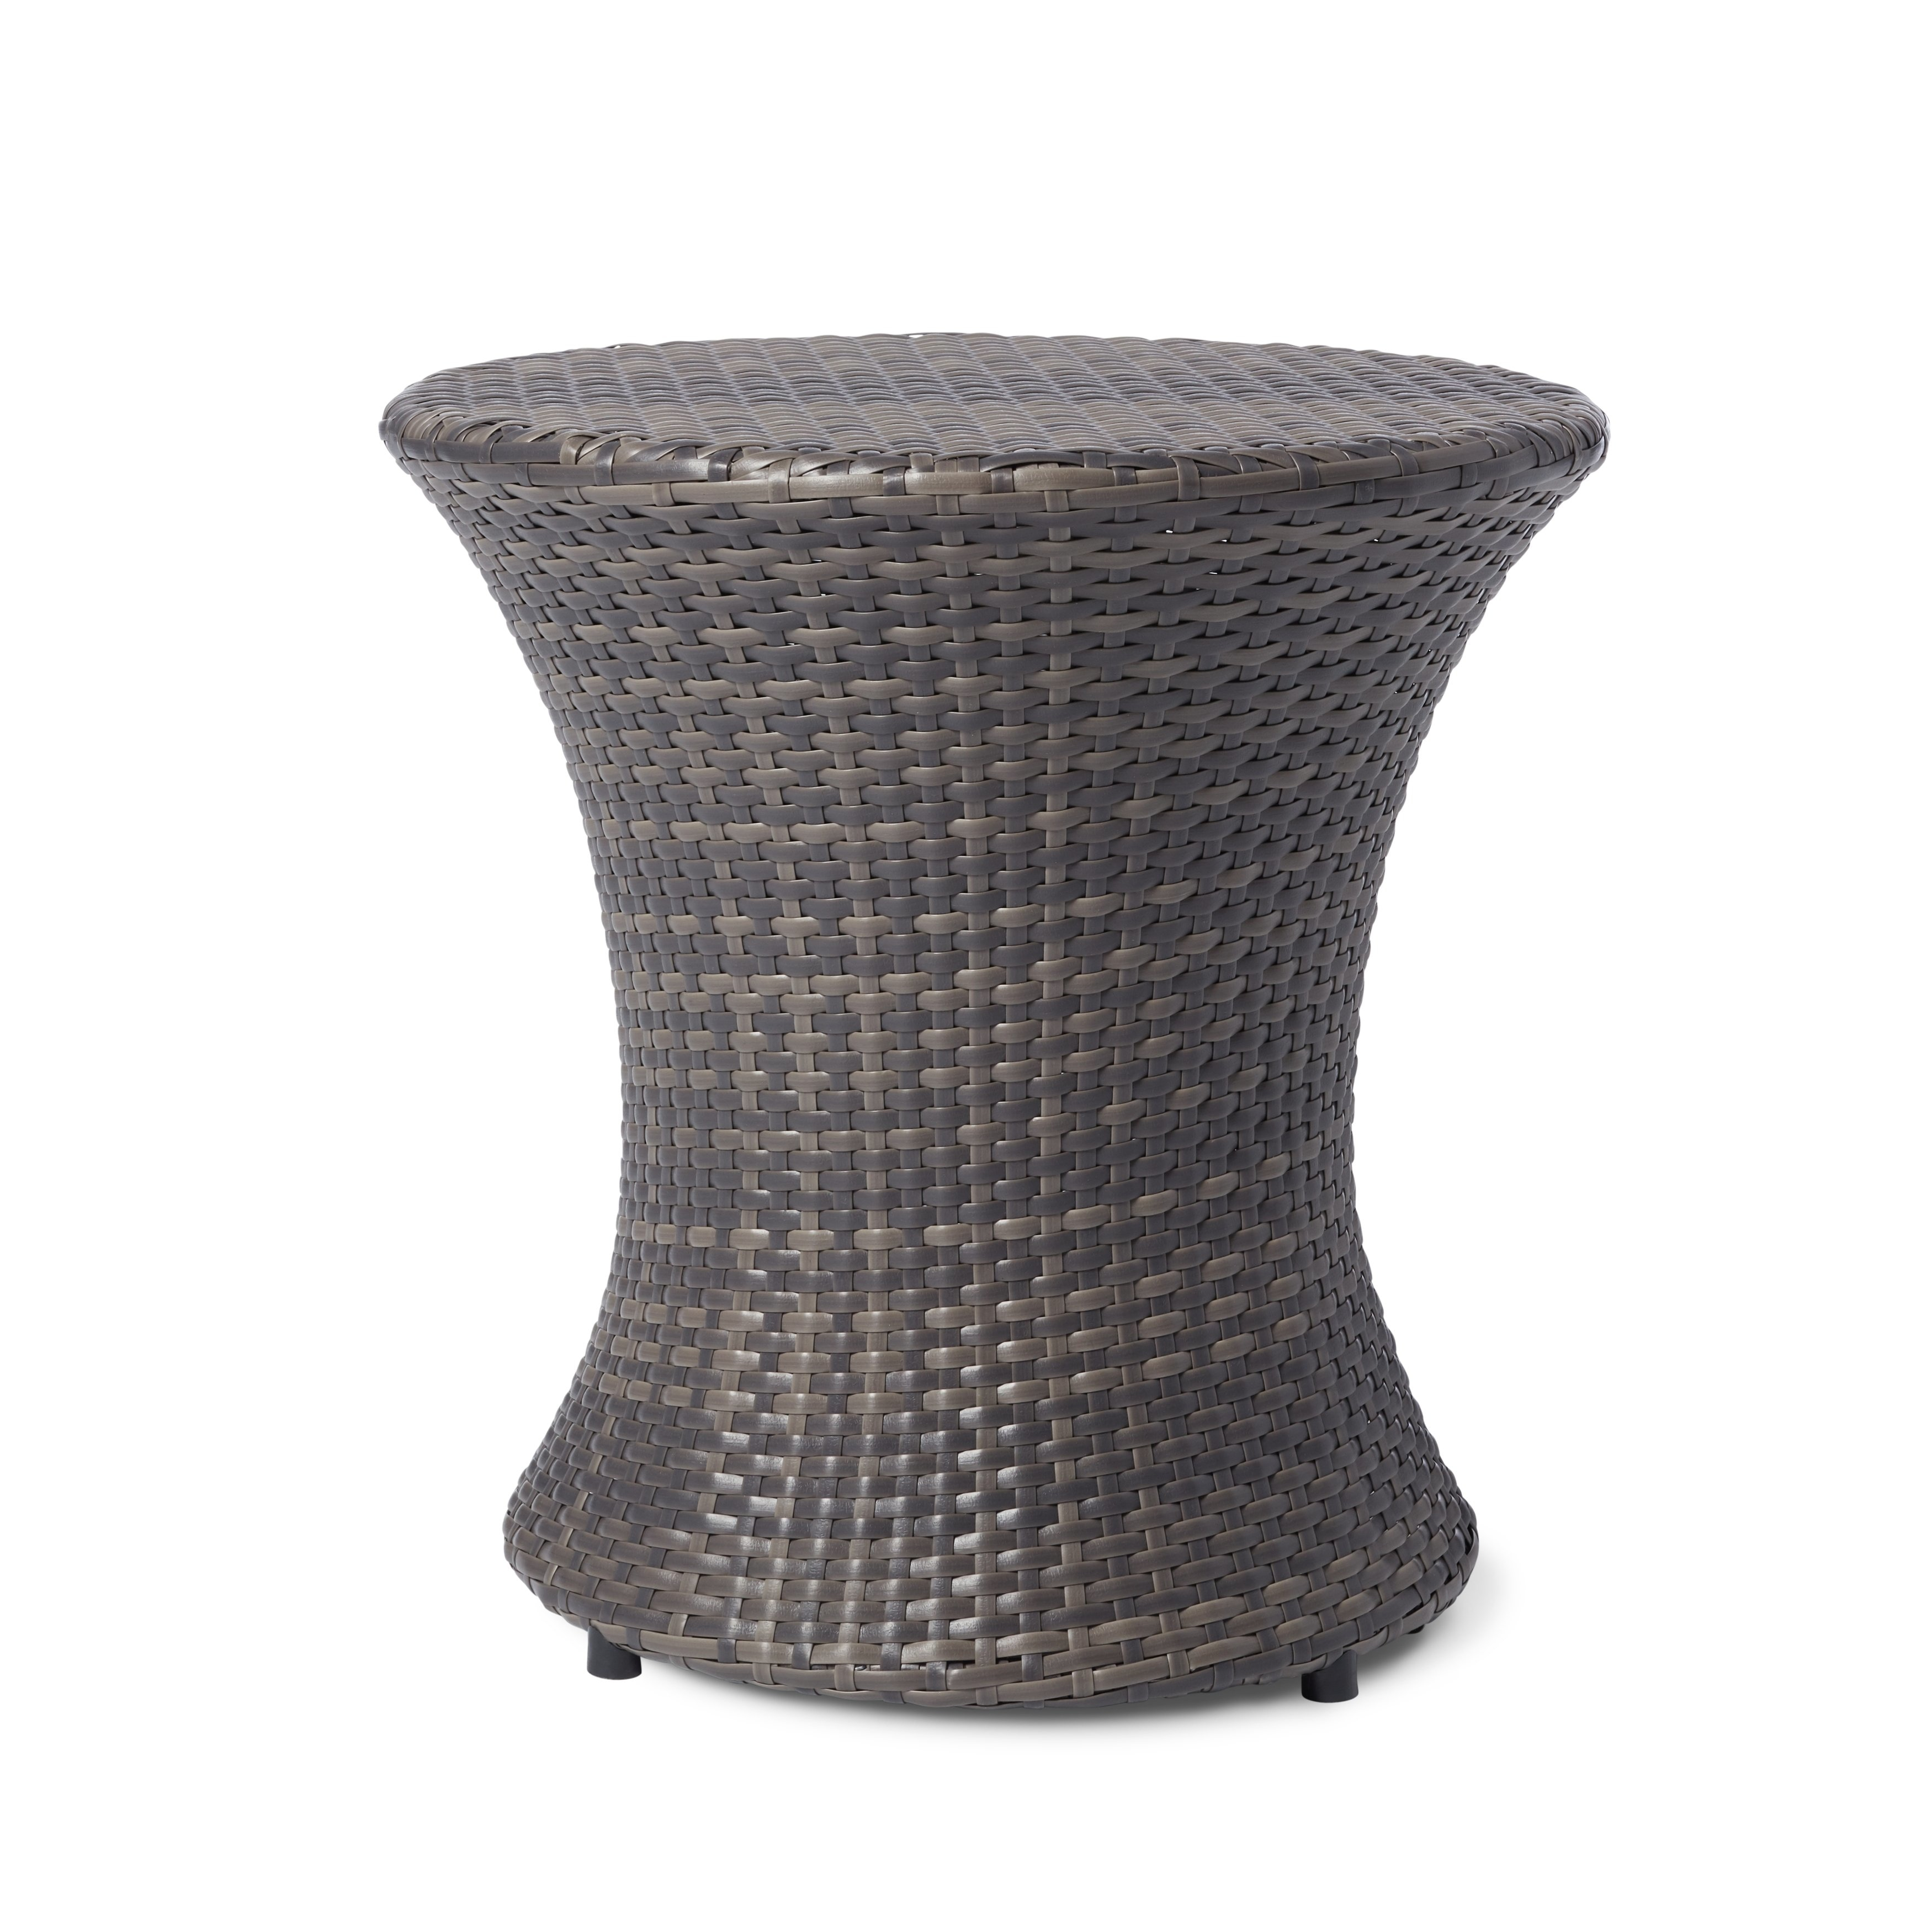 adriana wicker outdoor side table christopher knight home furniture free shipping today bathroom bidet mercury glass lamp cast metal accent nate berkus acrylic with shelf mosaic